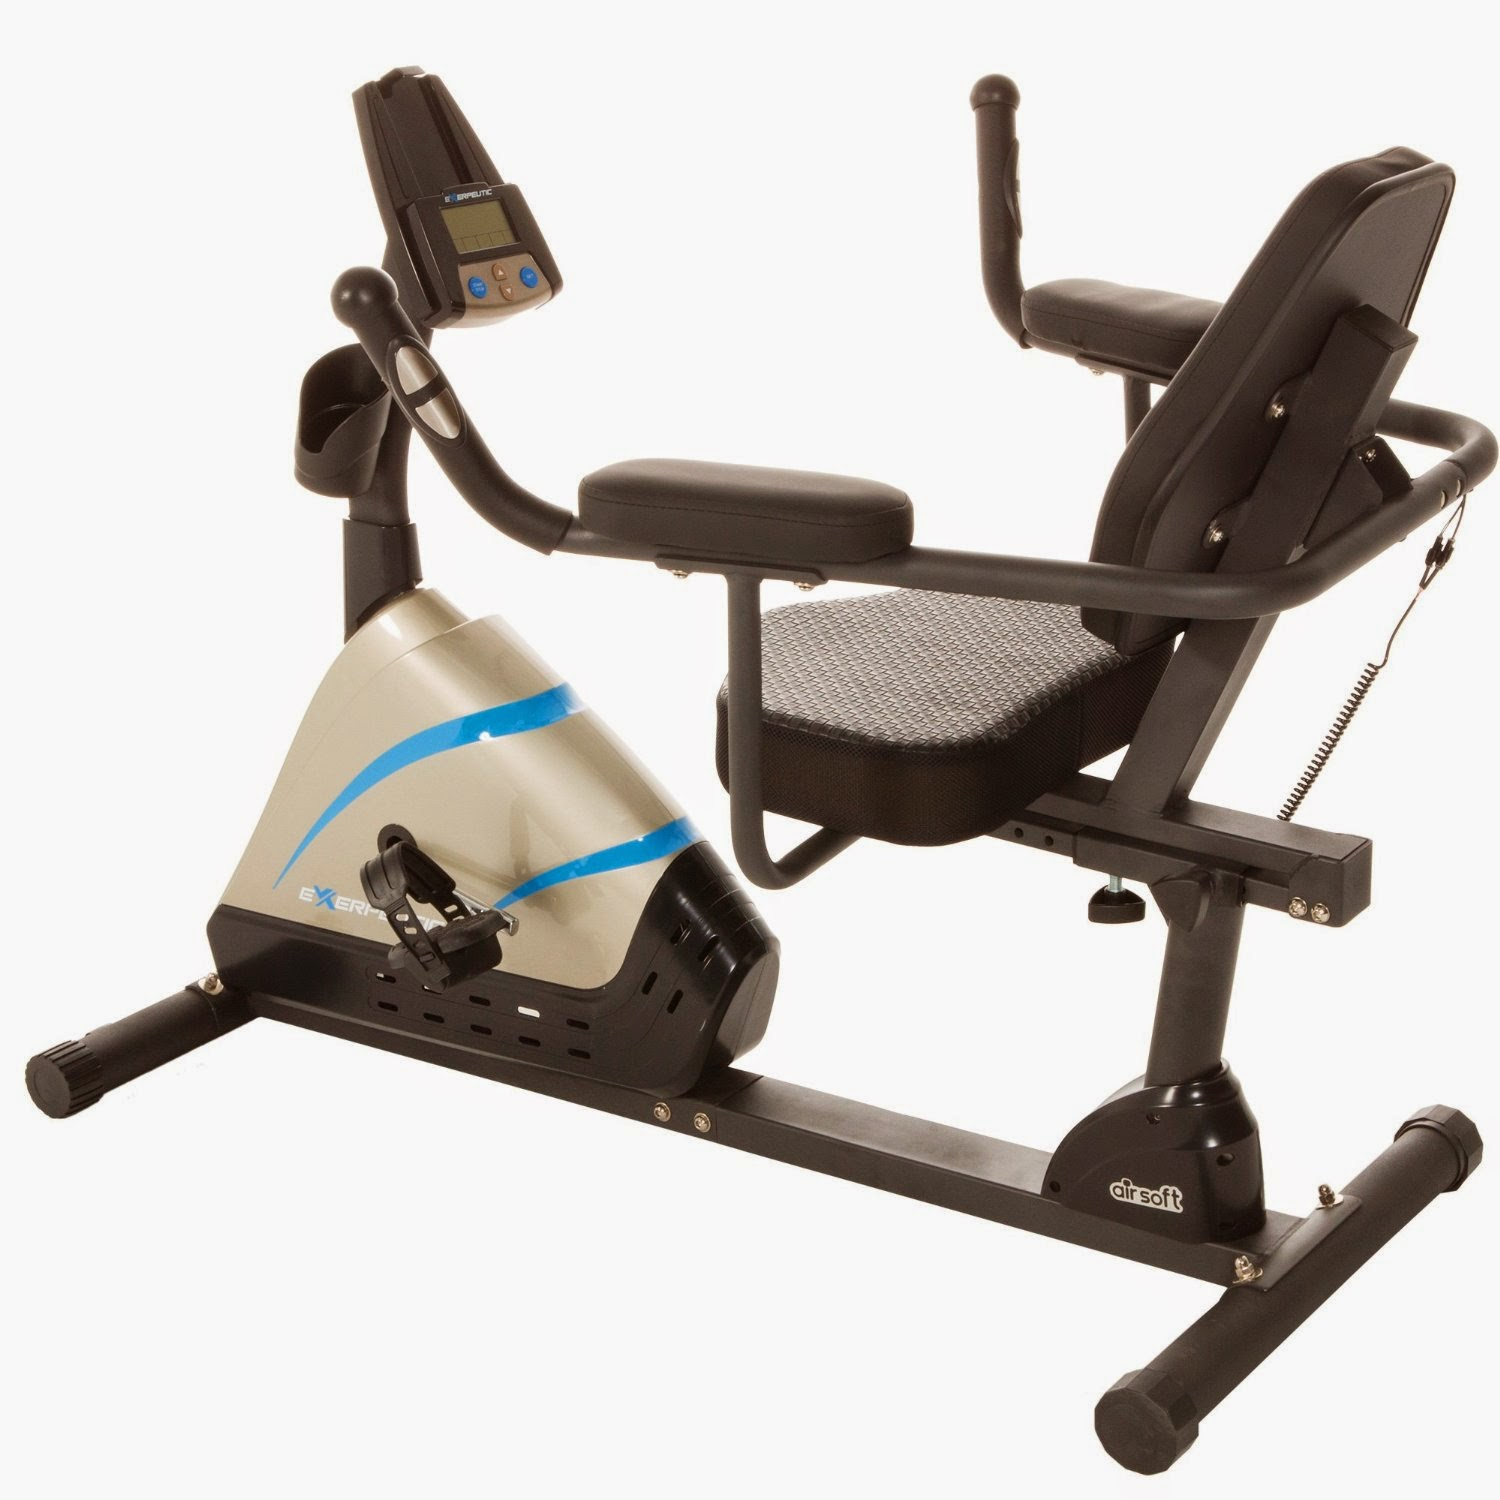 Resistance Chair Exercise System Reviews Felt Protectors Health And Fitness Den Exerpeutic 2000 High Capacity